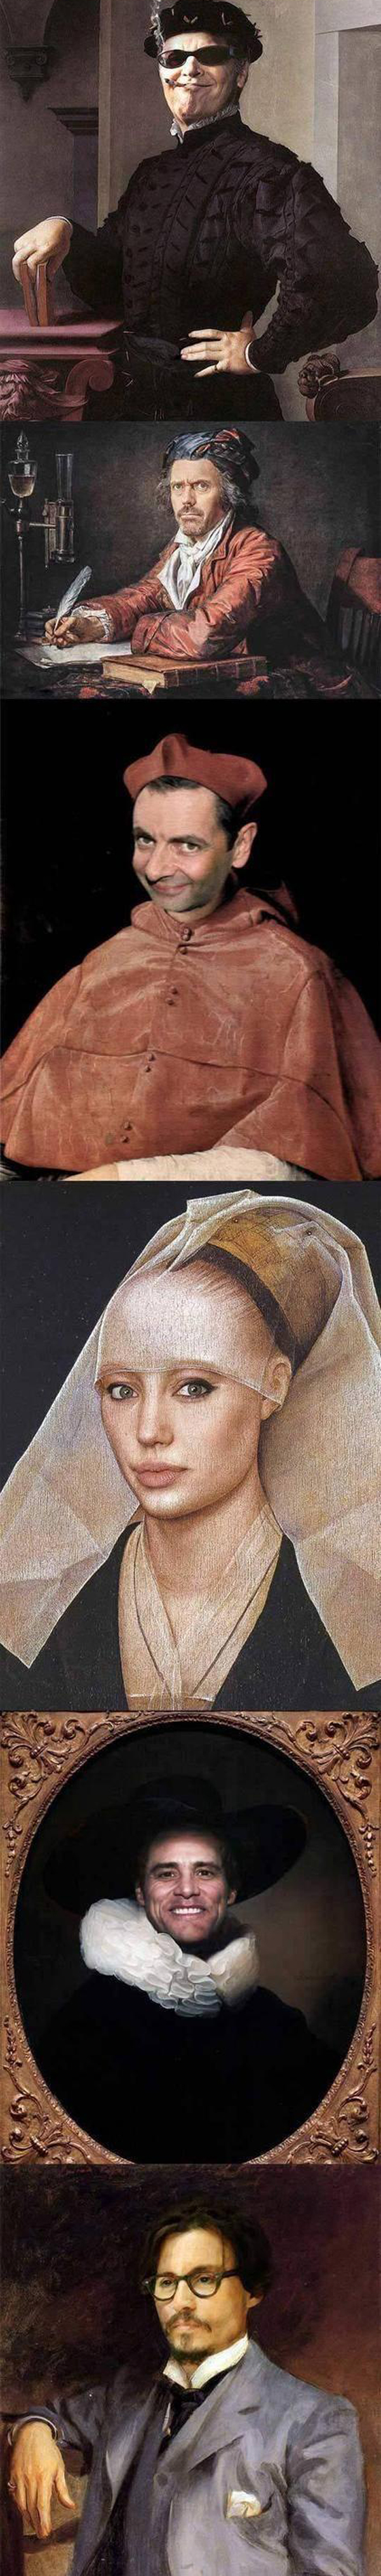 famous paintings with celebs